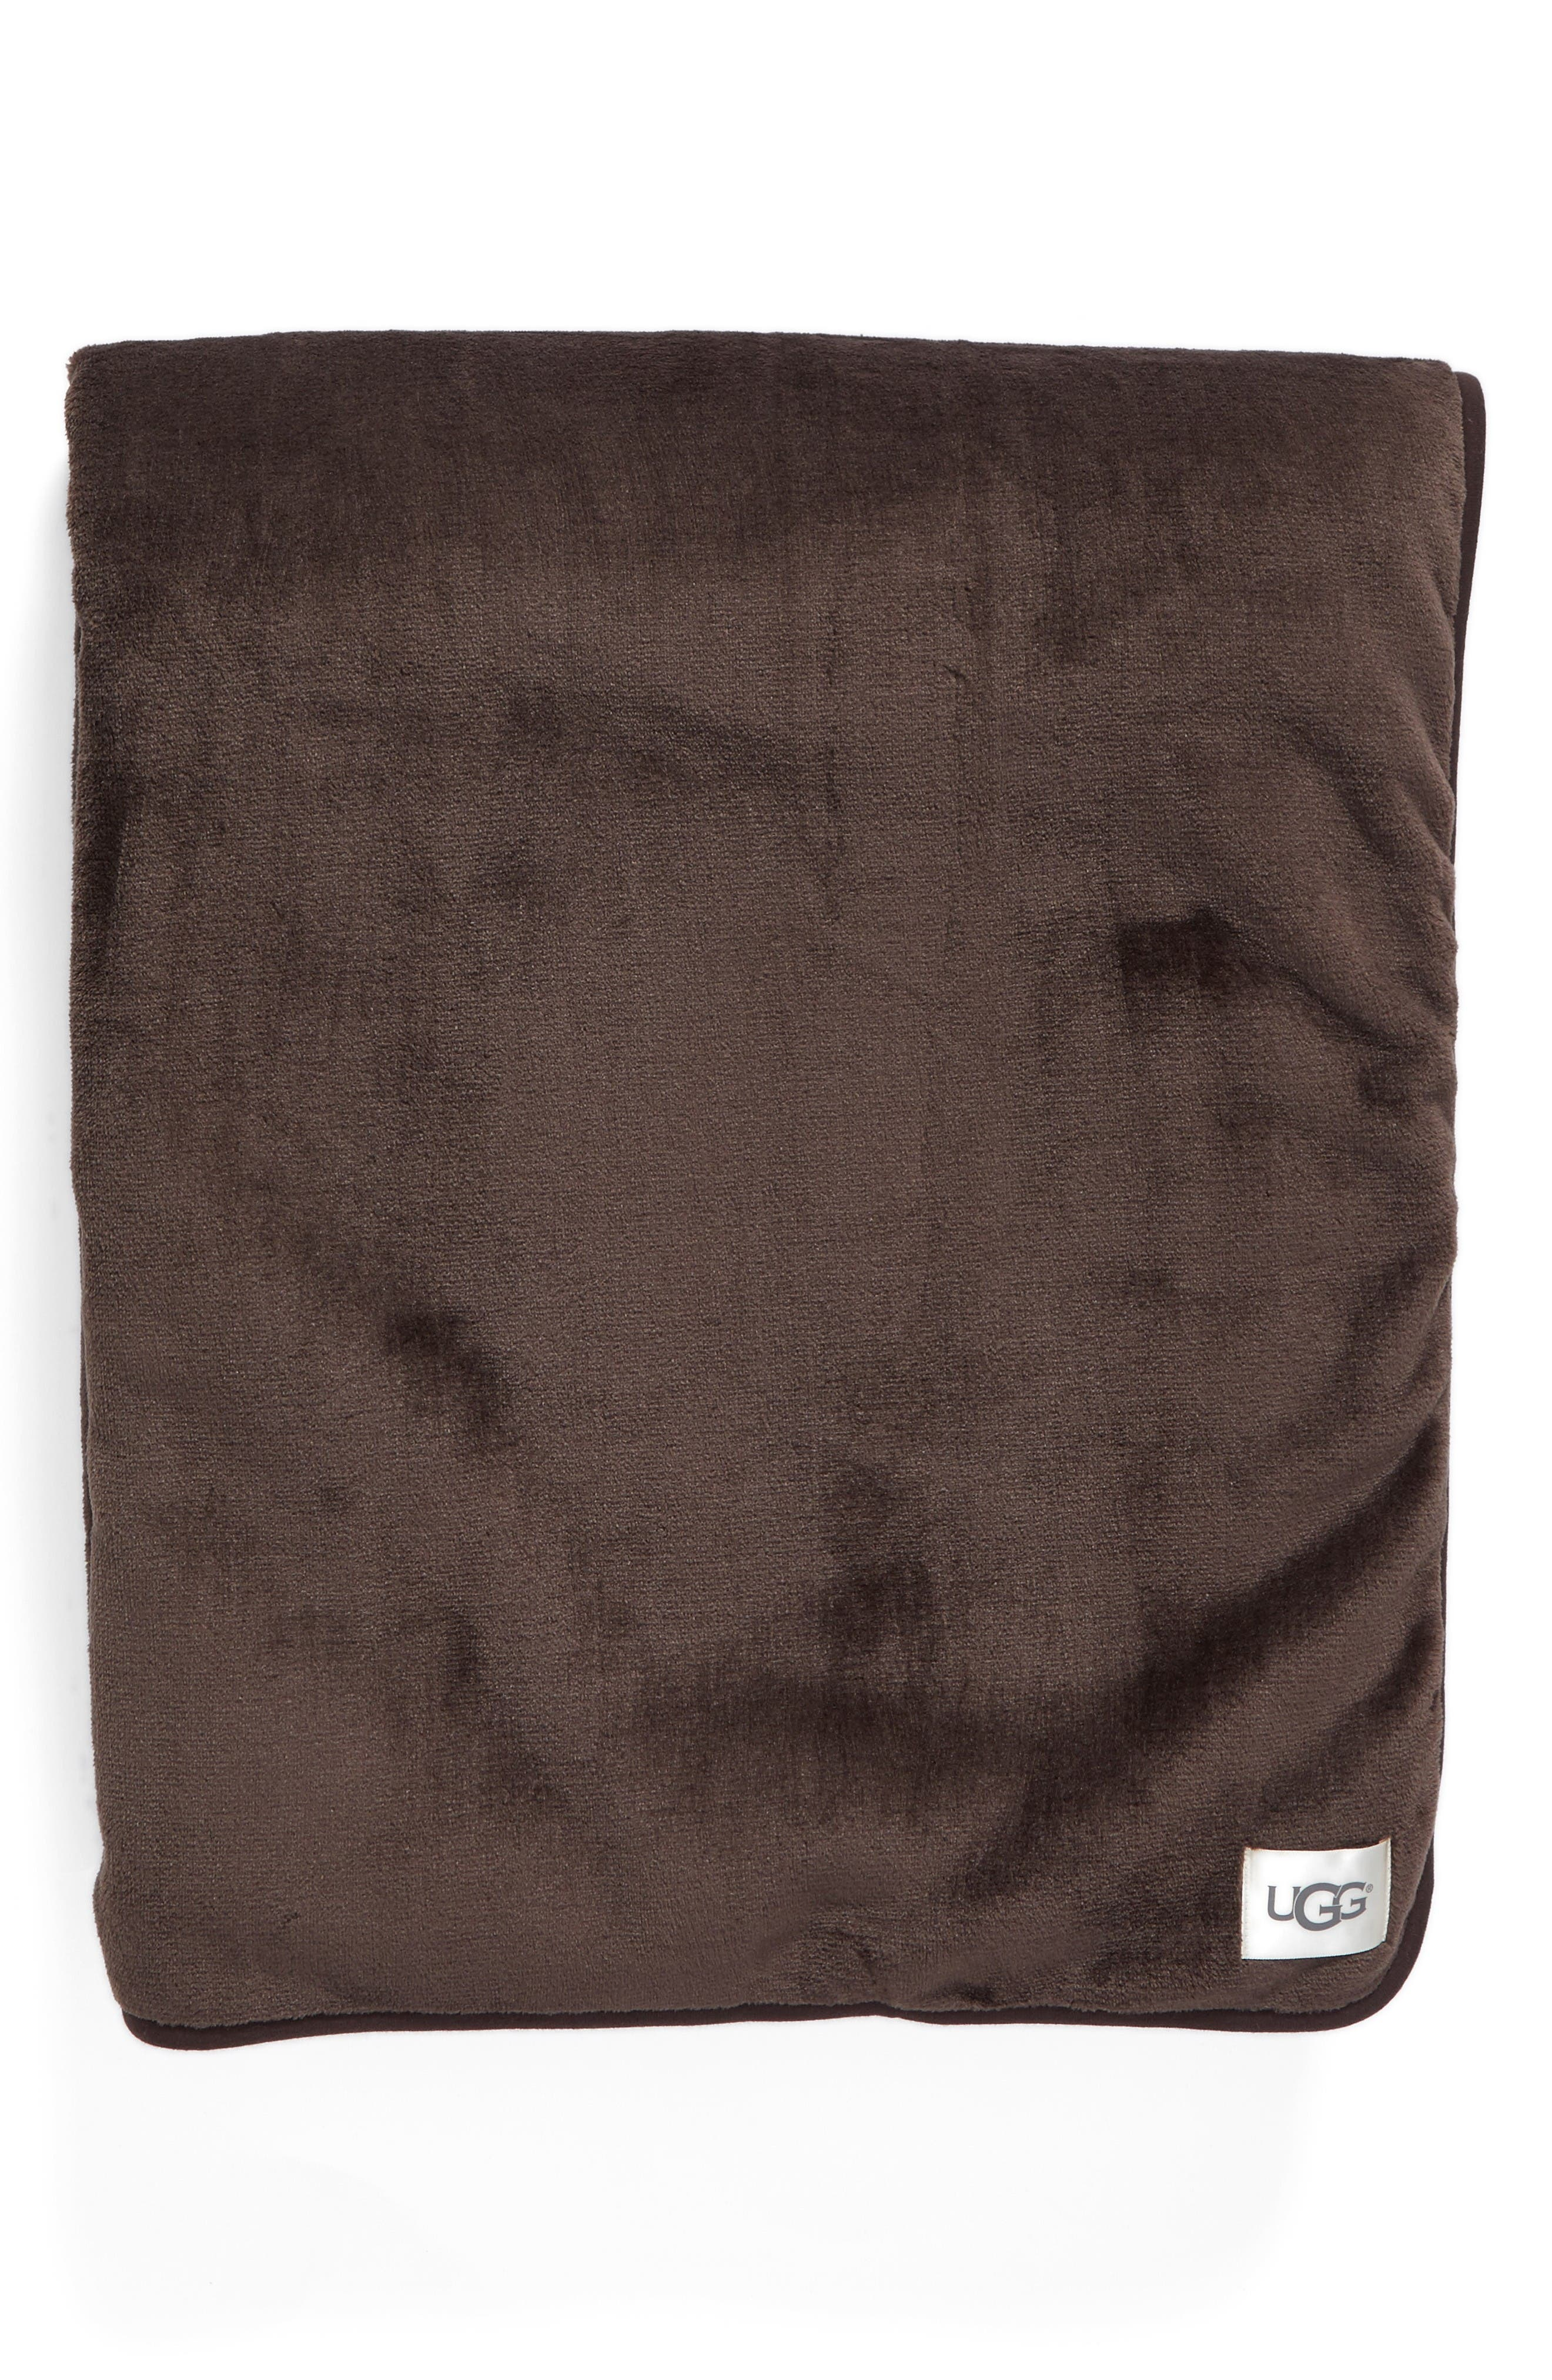 XL Duffield Spa Throw,                         Main,                         color, Stout